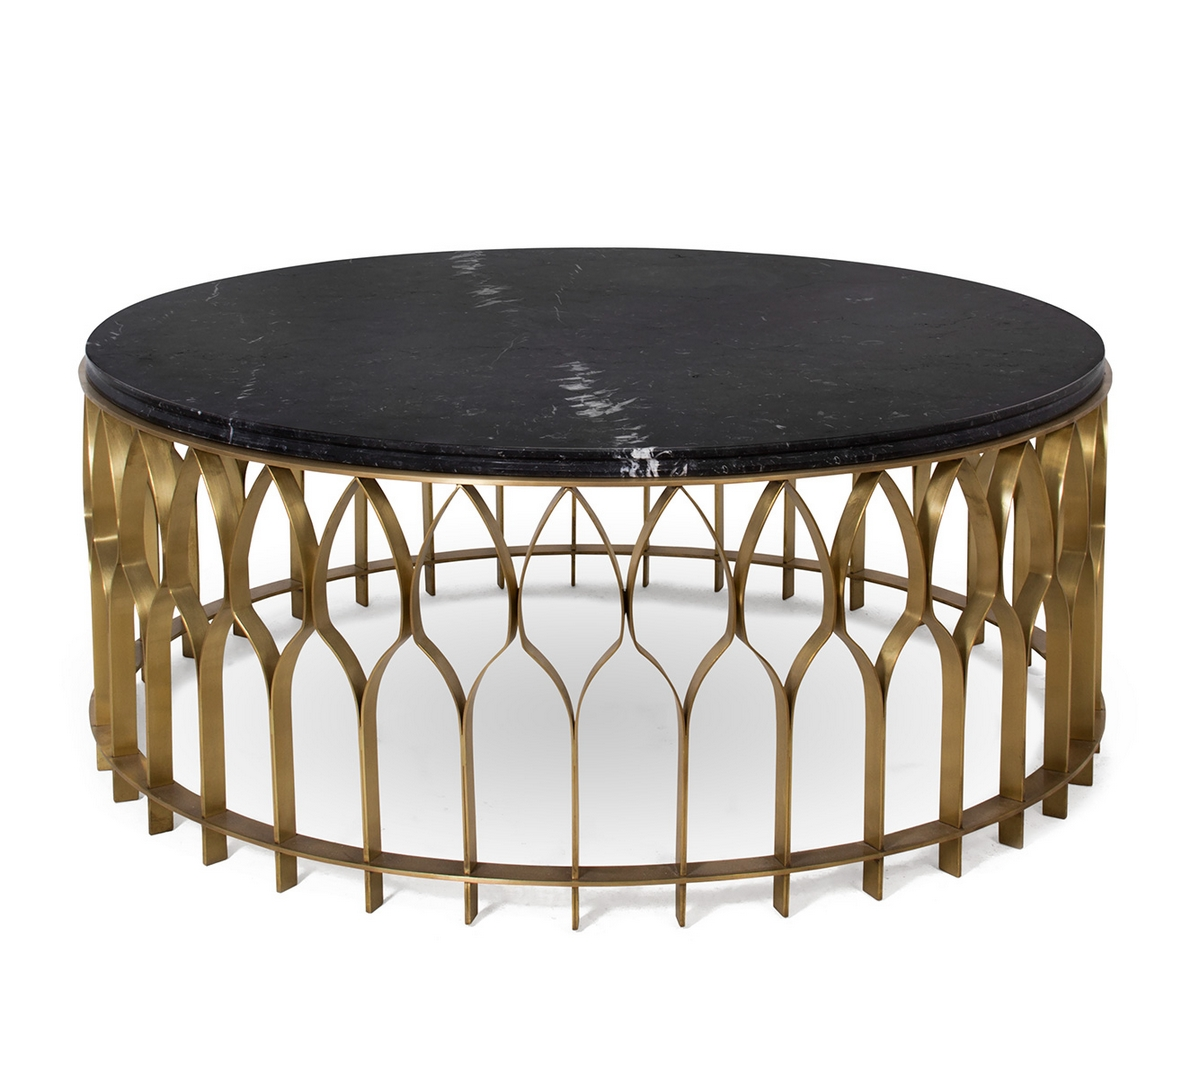 center table Golden Center Tables That You Need To Add To Your Home Decor mecca center table zoom